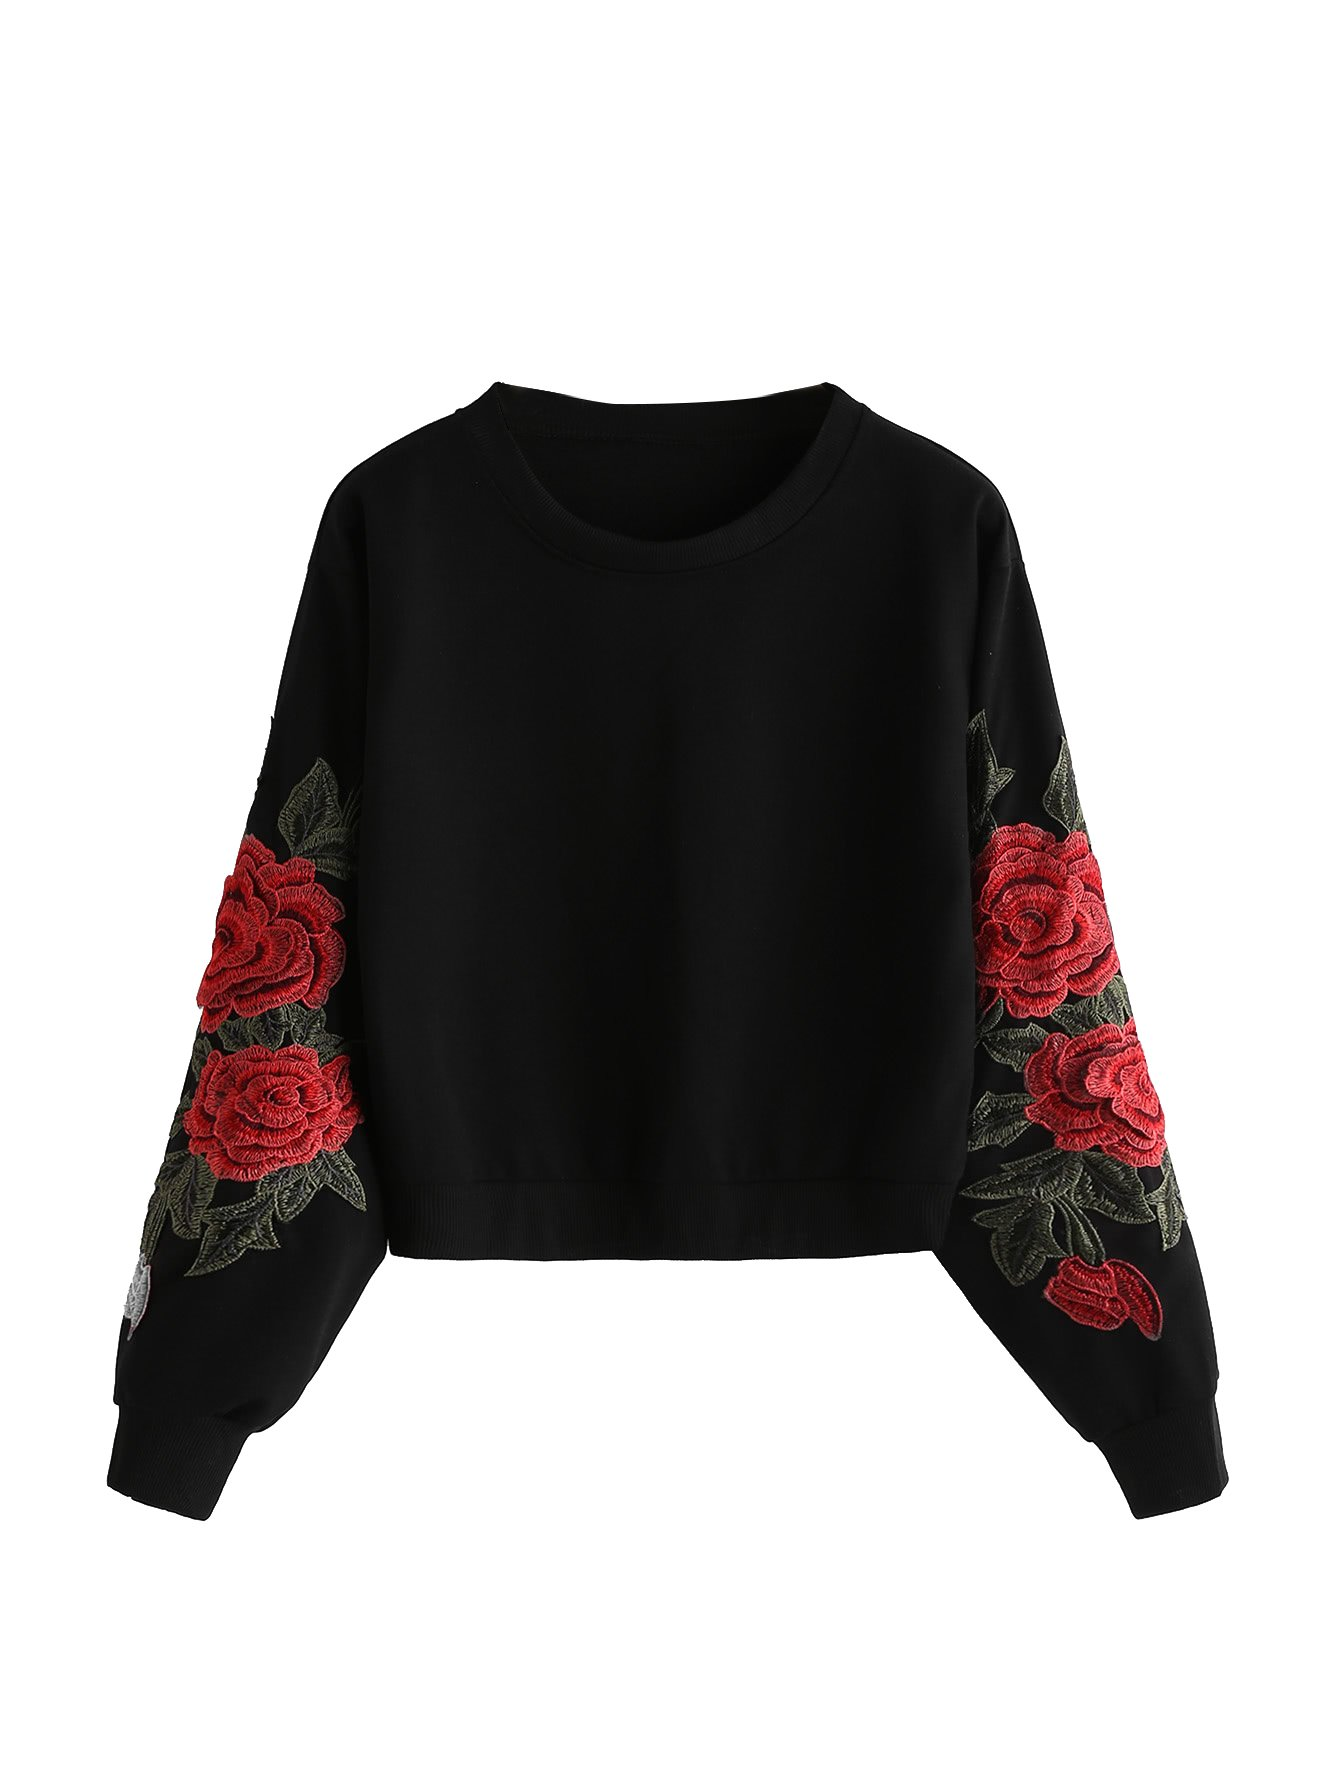 2f94161cae3 Romwe Women's Casual 3D Embroidered Crew Neck Pullover Crop Top Sweatshirt